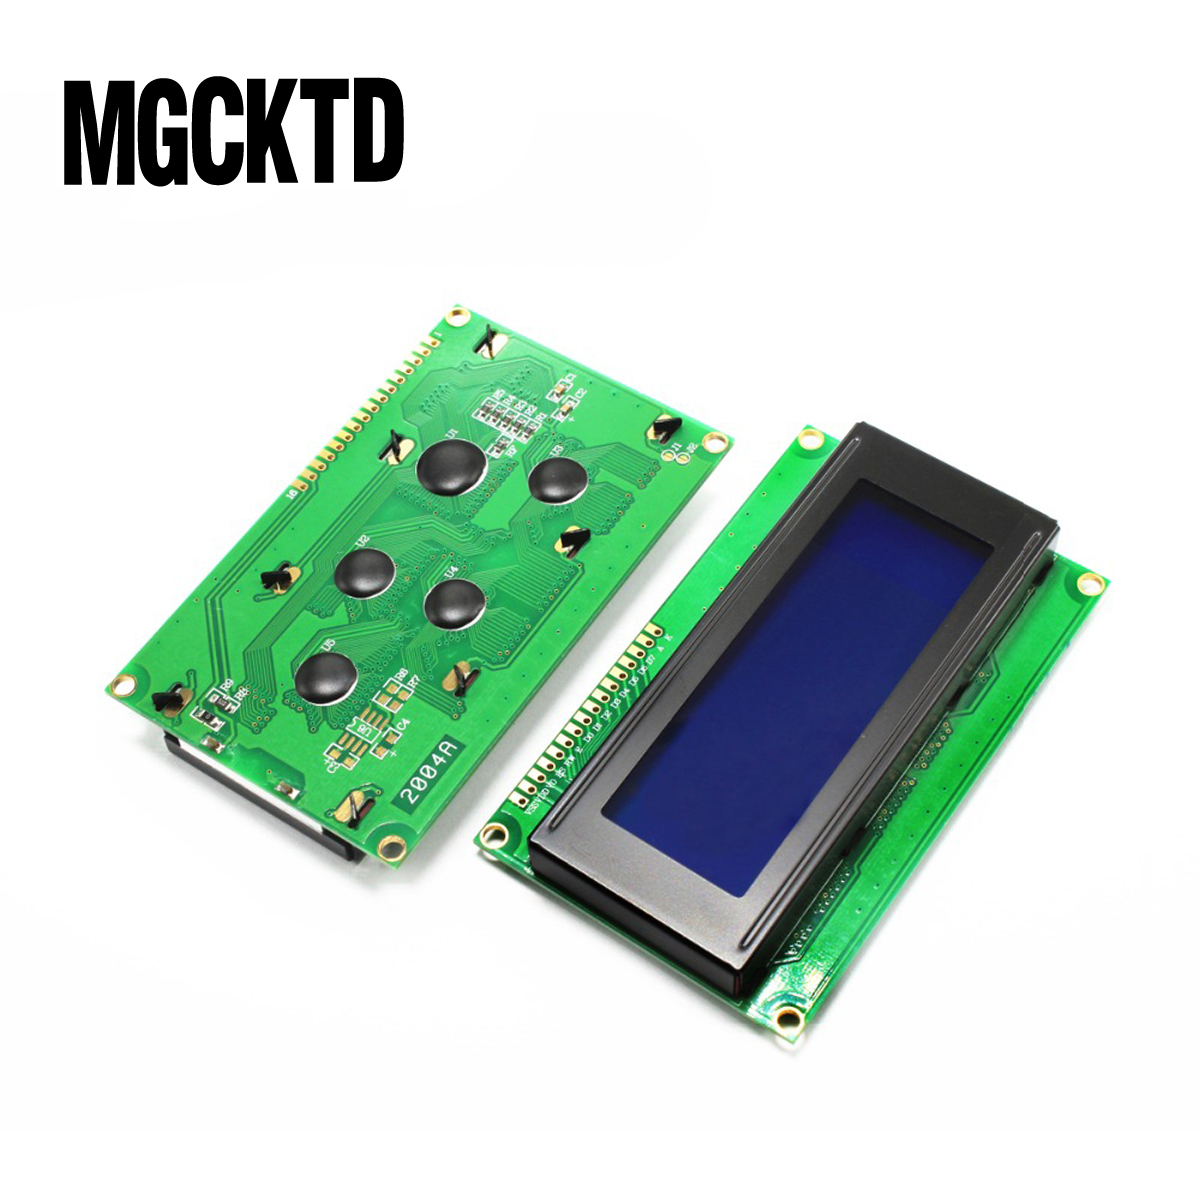 ! LCD Board 2004 20*4 LCD 20X4 5V Blue Screen LCD2004 Display LCD Module LCD 2004